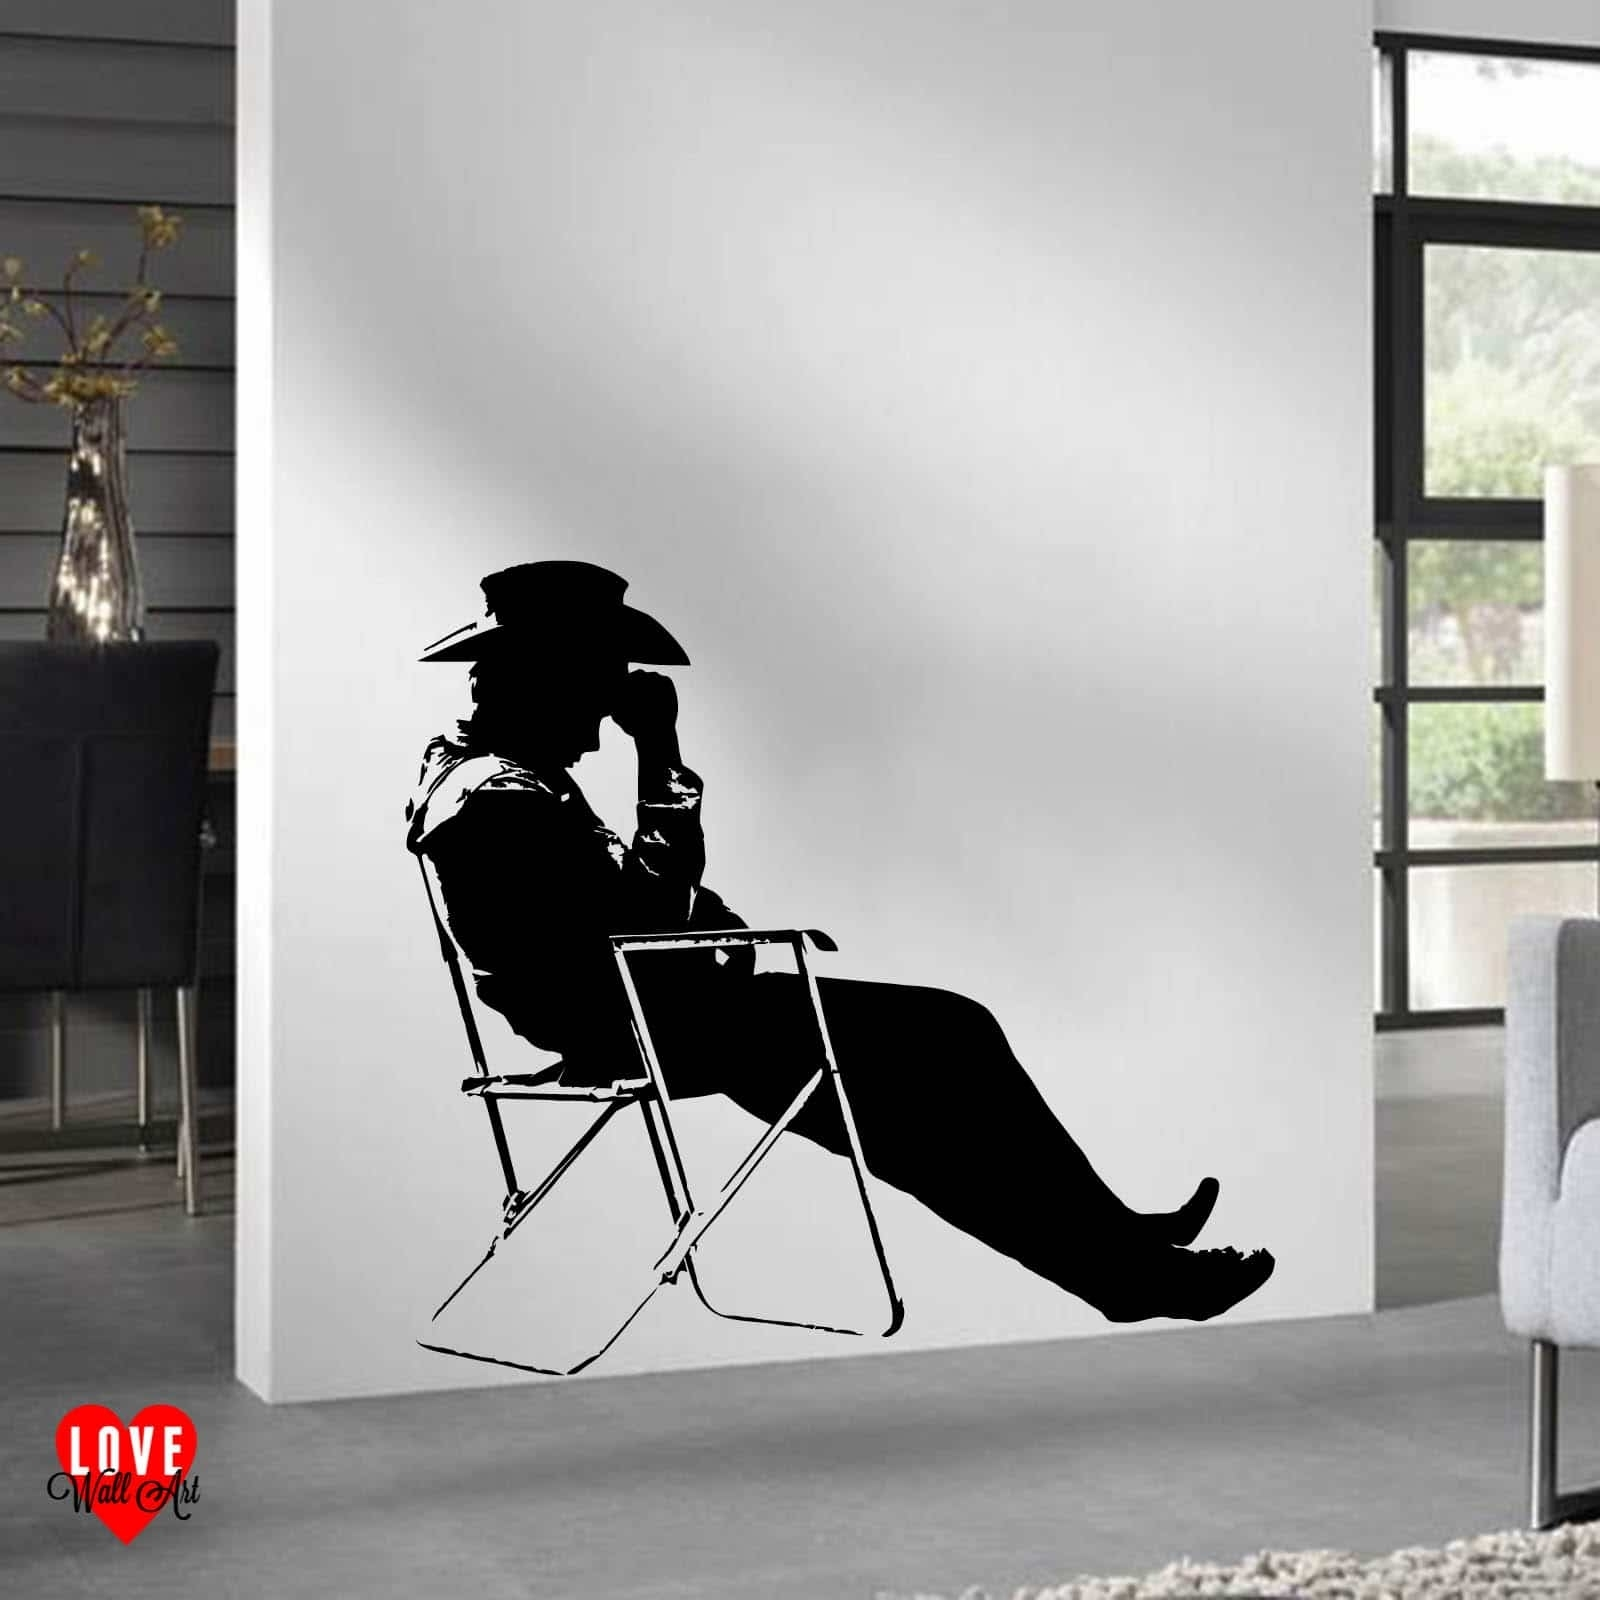 James Dean On The Movie Set Of Giant Large Wall Art Sticker Within Most Popular Giant Wall Art (Gallery 20 of 20)